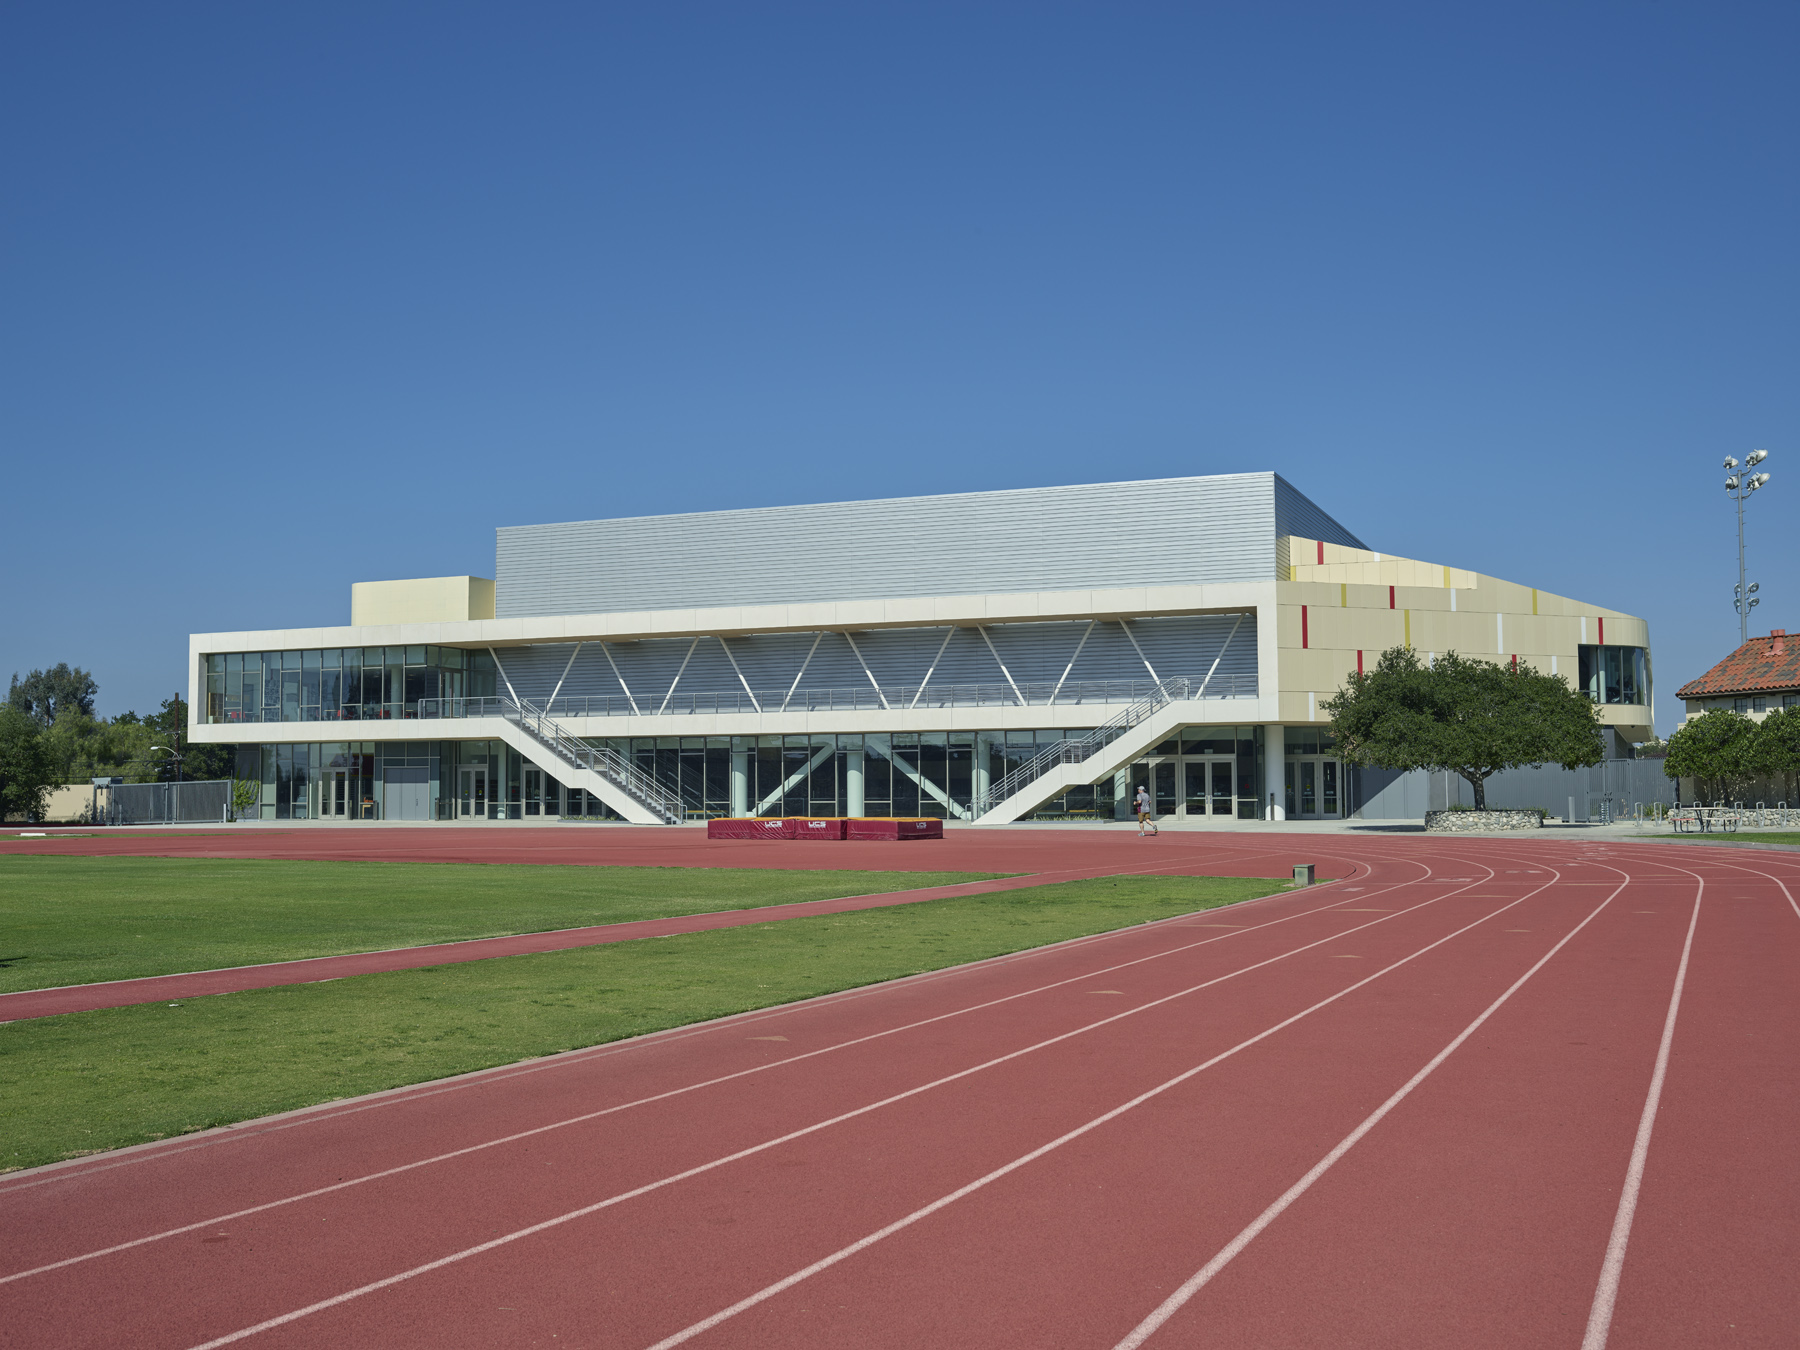 Track and field facade (east elevation)